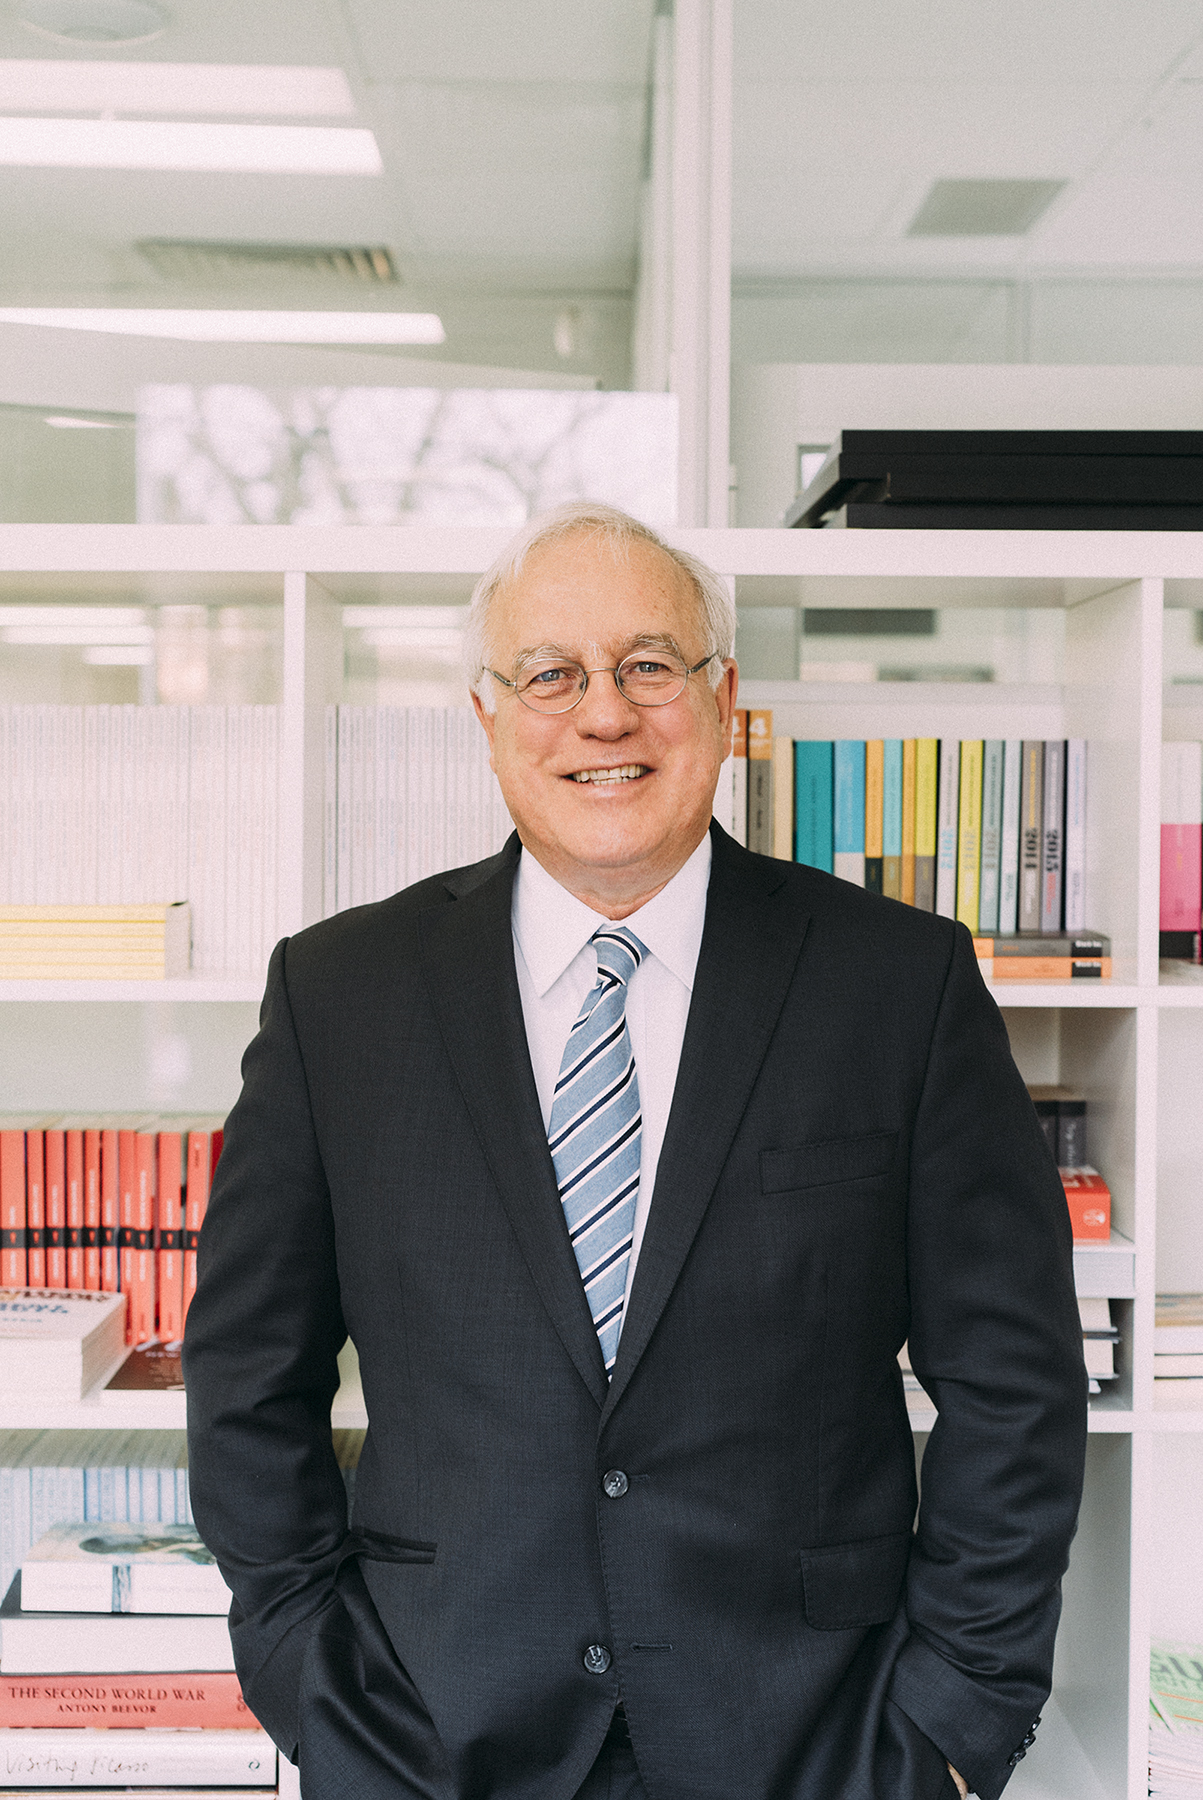 It's Your Money author and financial industry expert, Alan Kohler.